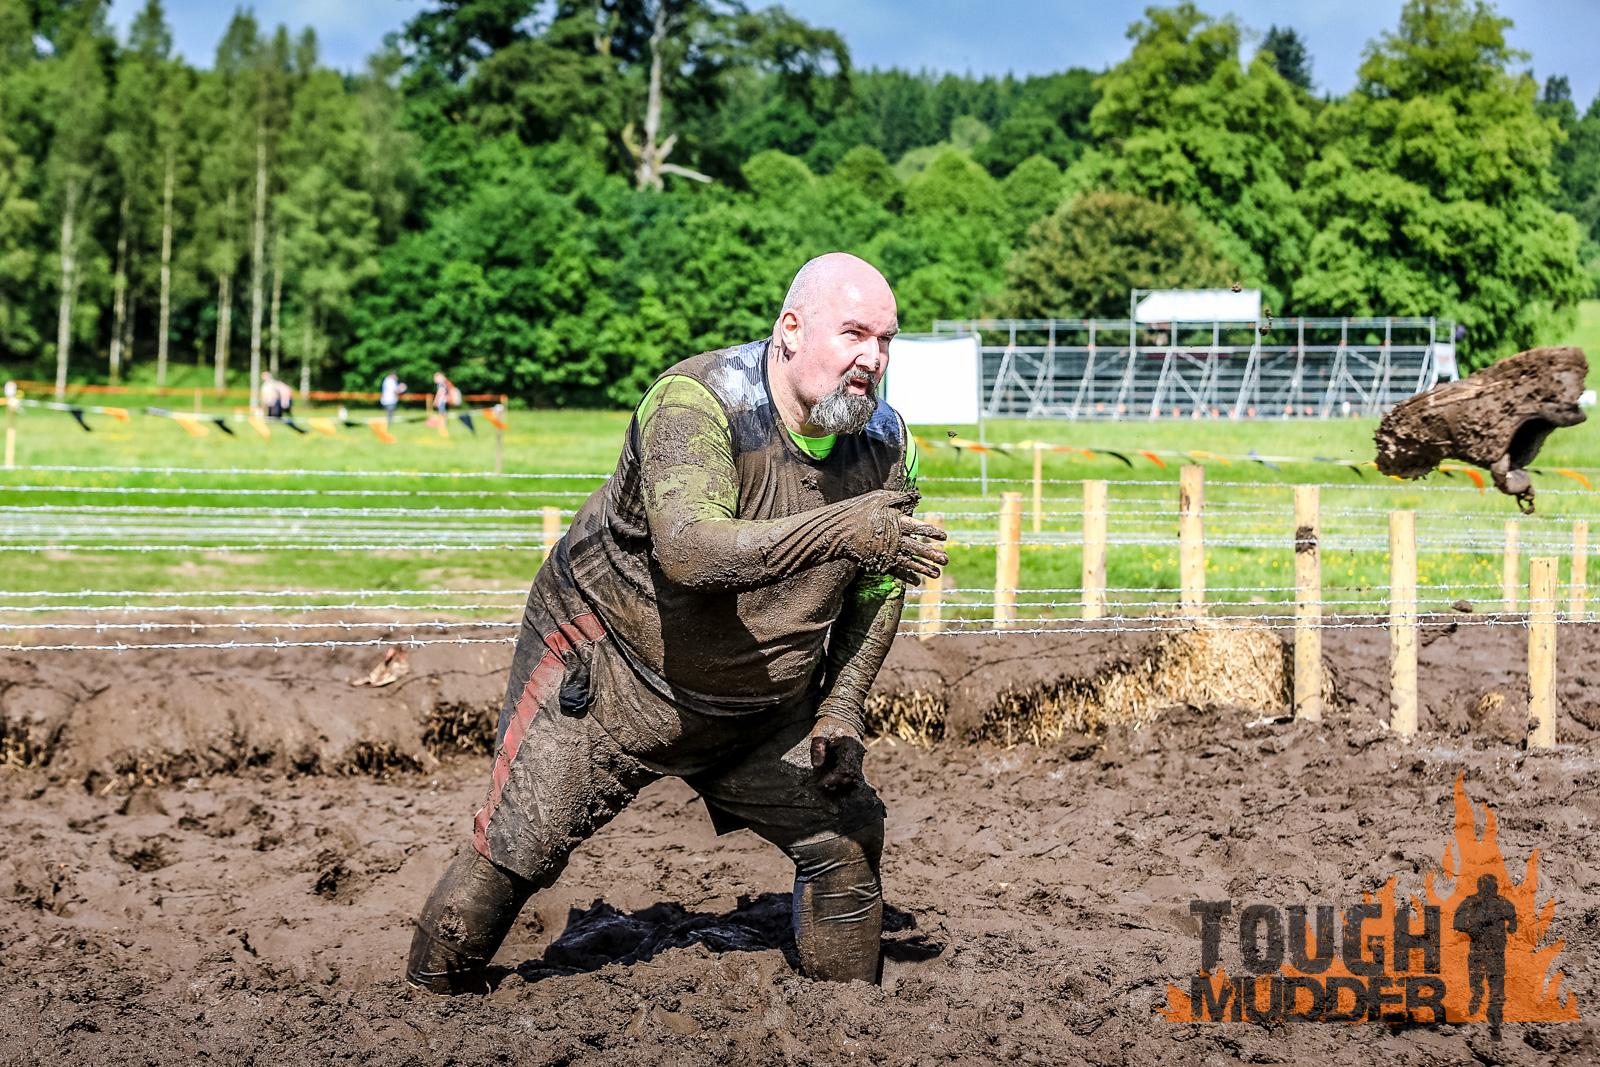 Tough-mudder-2017-sports-photography-edinburgh-glasgow-10.jpg